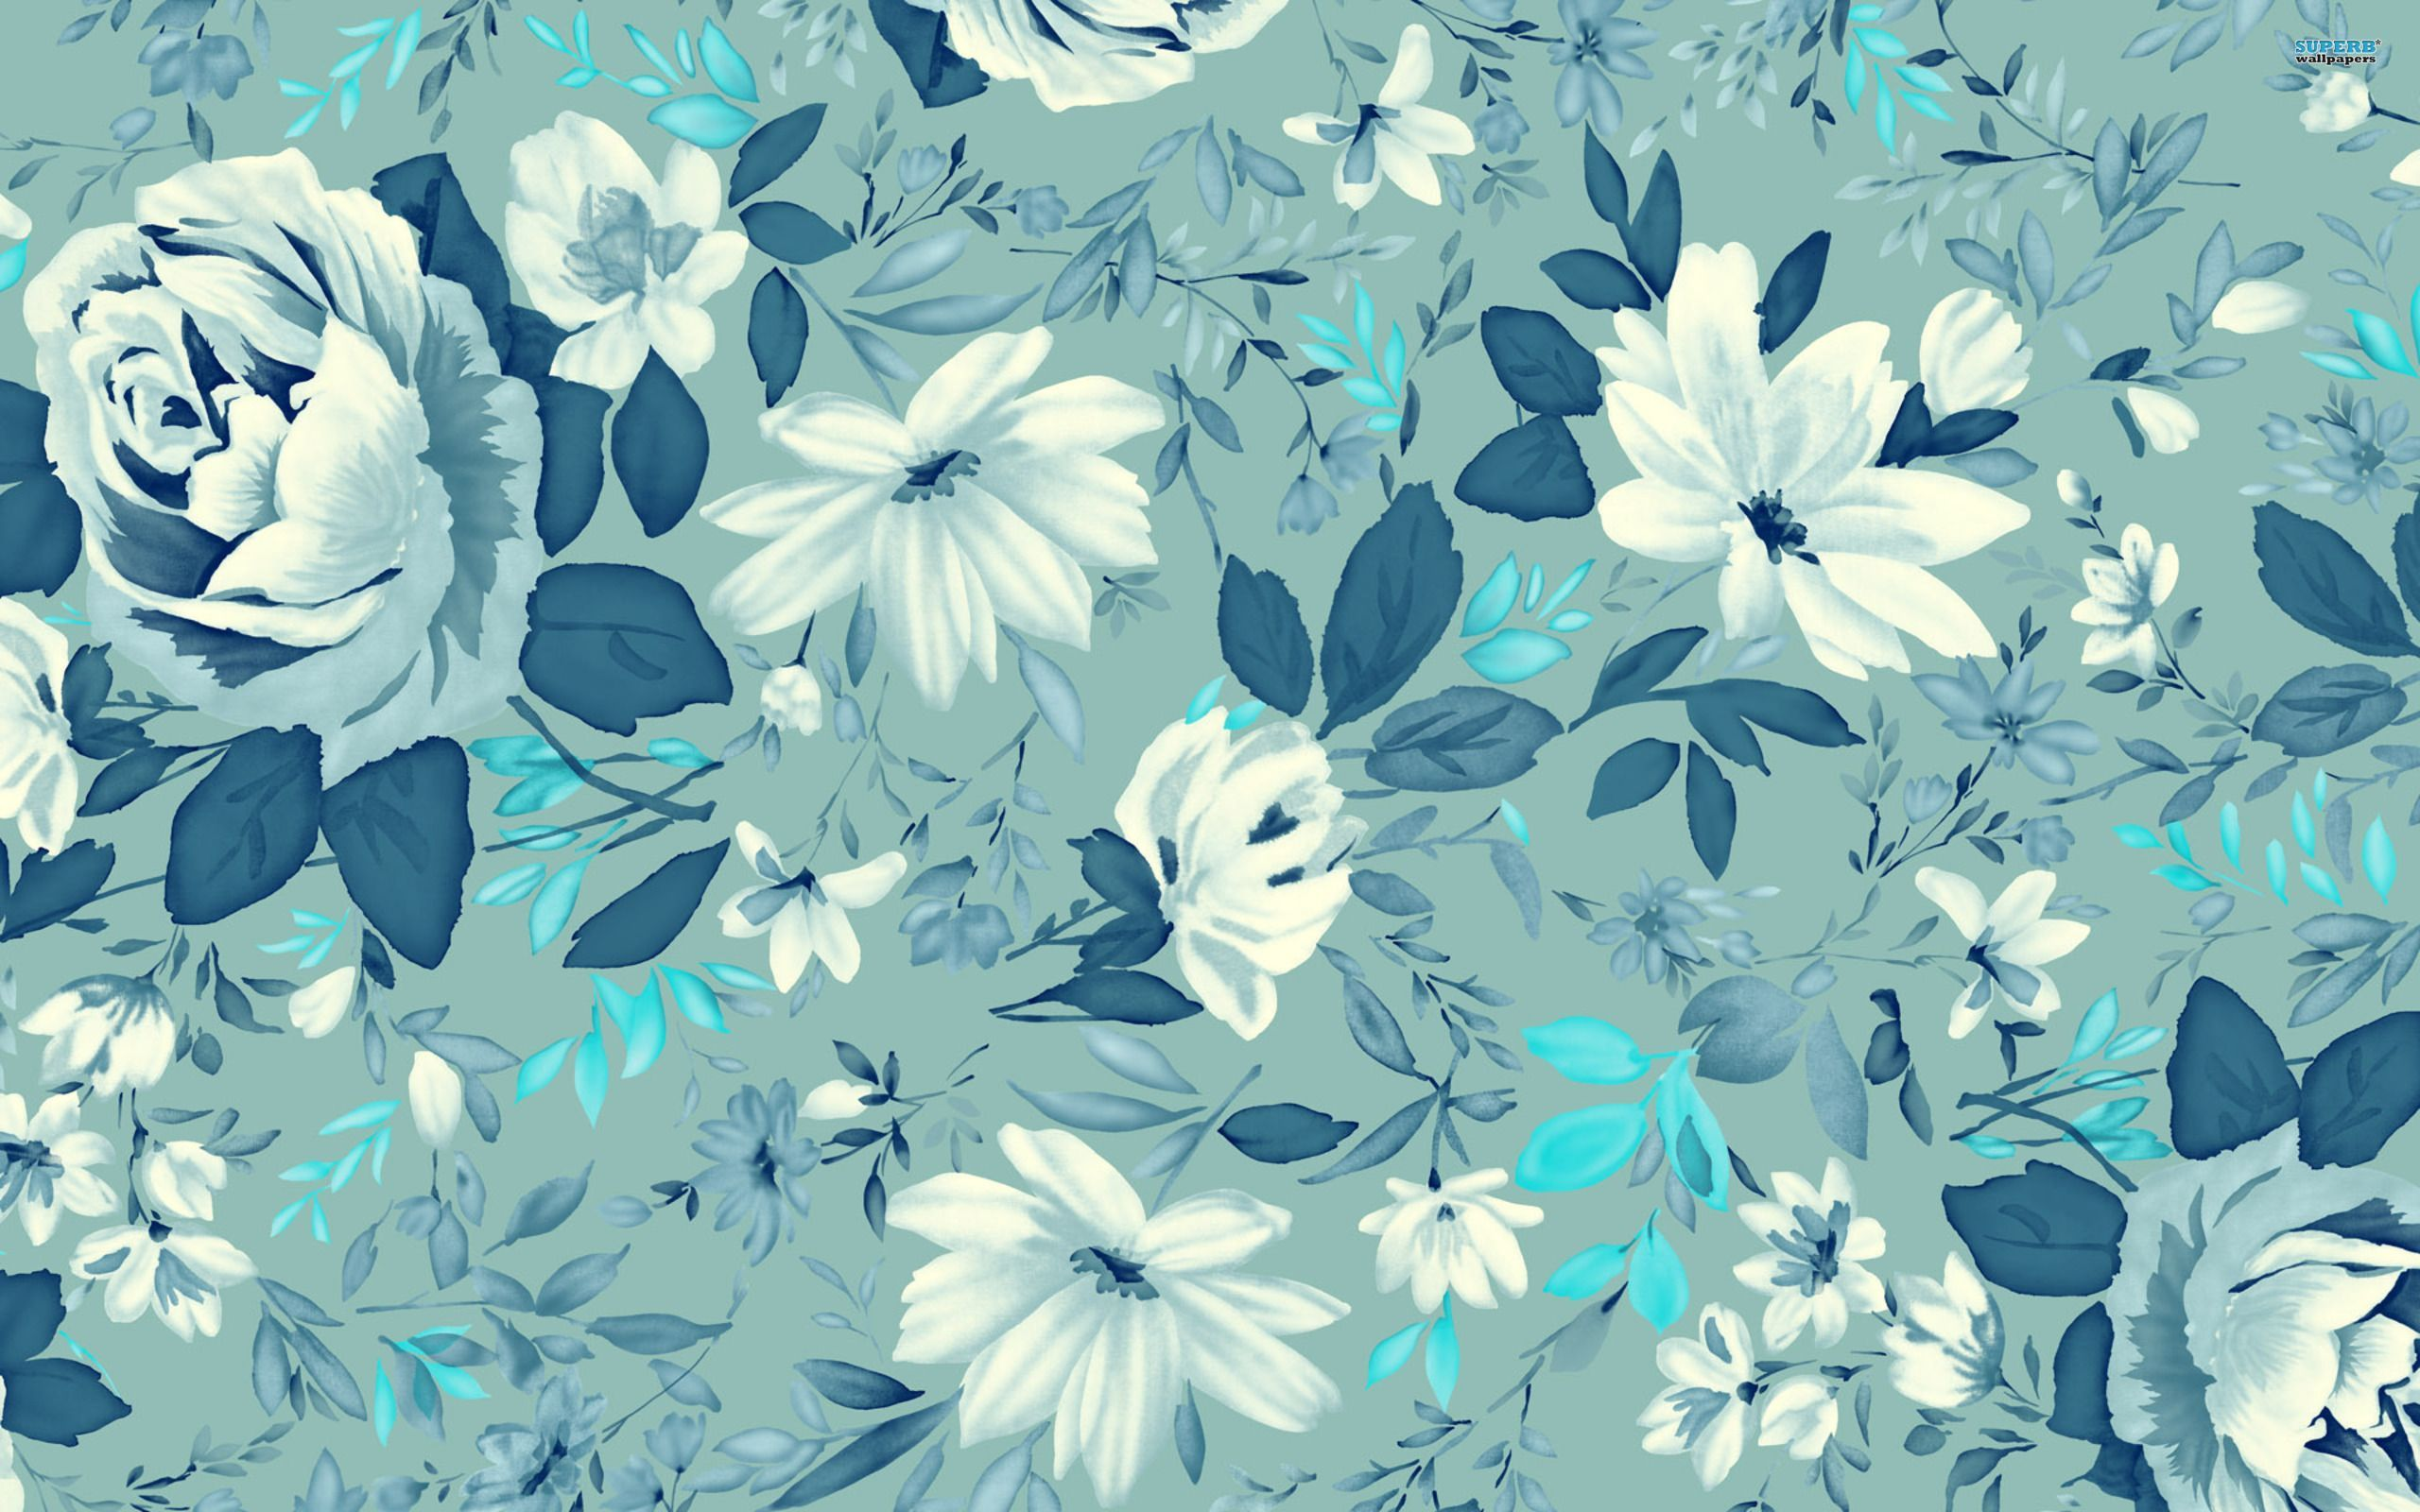 Blue Floral Wallpaper for the perfect for the modern interior decor